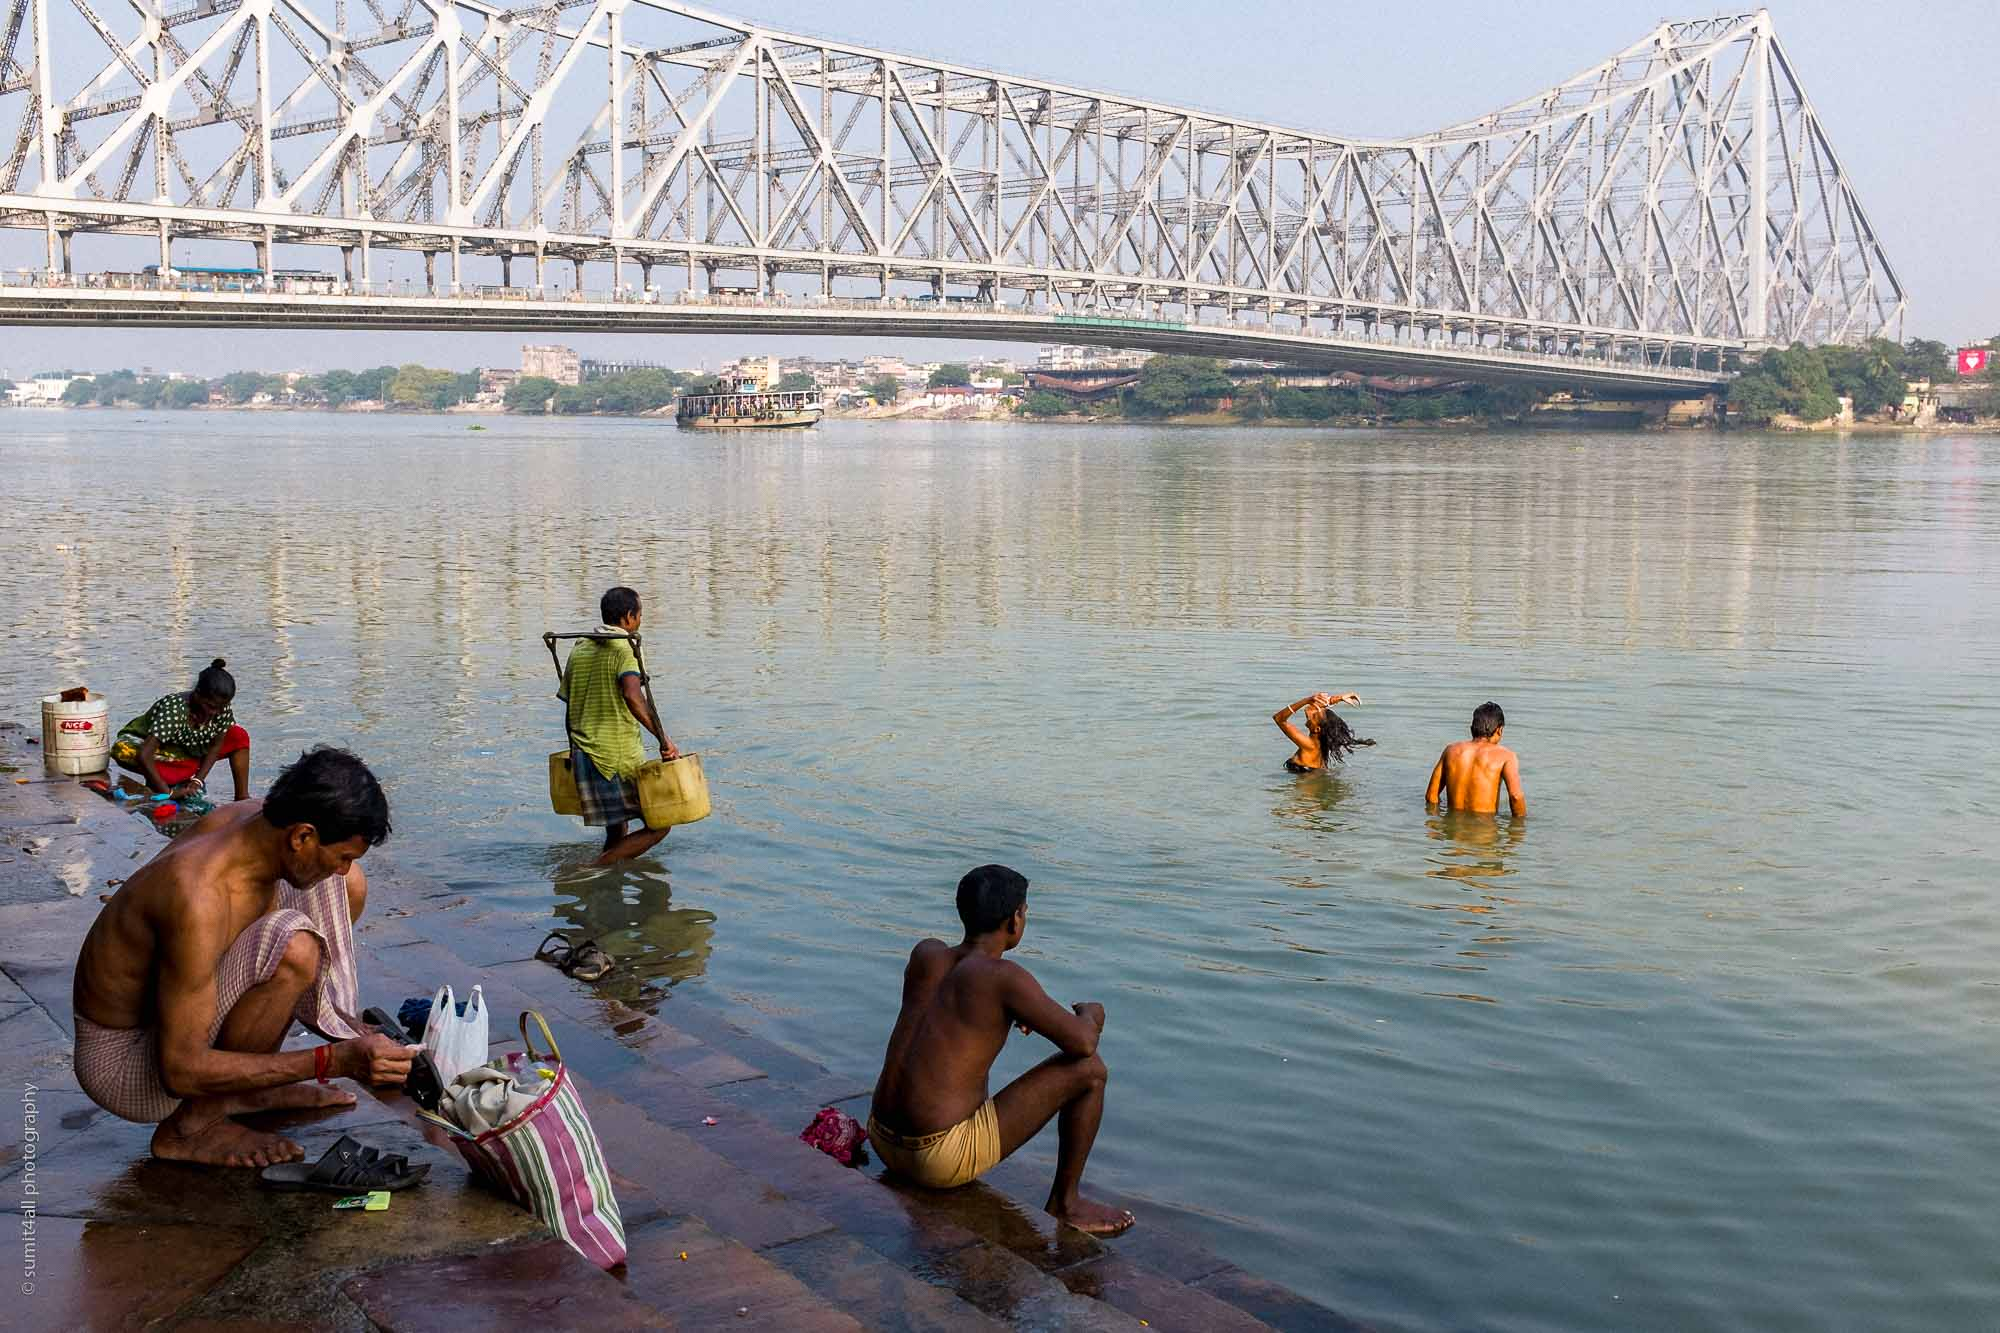 People bathing near the Howrah Bridge in Kolkata